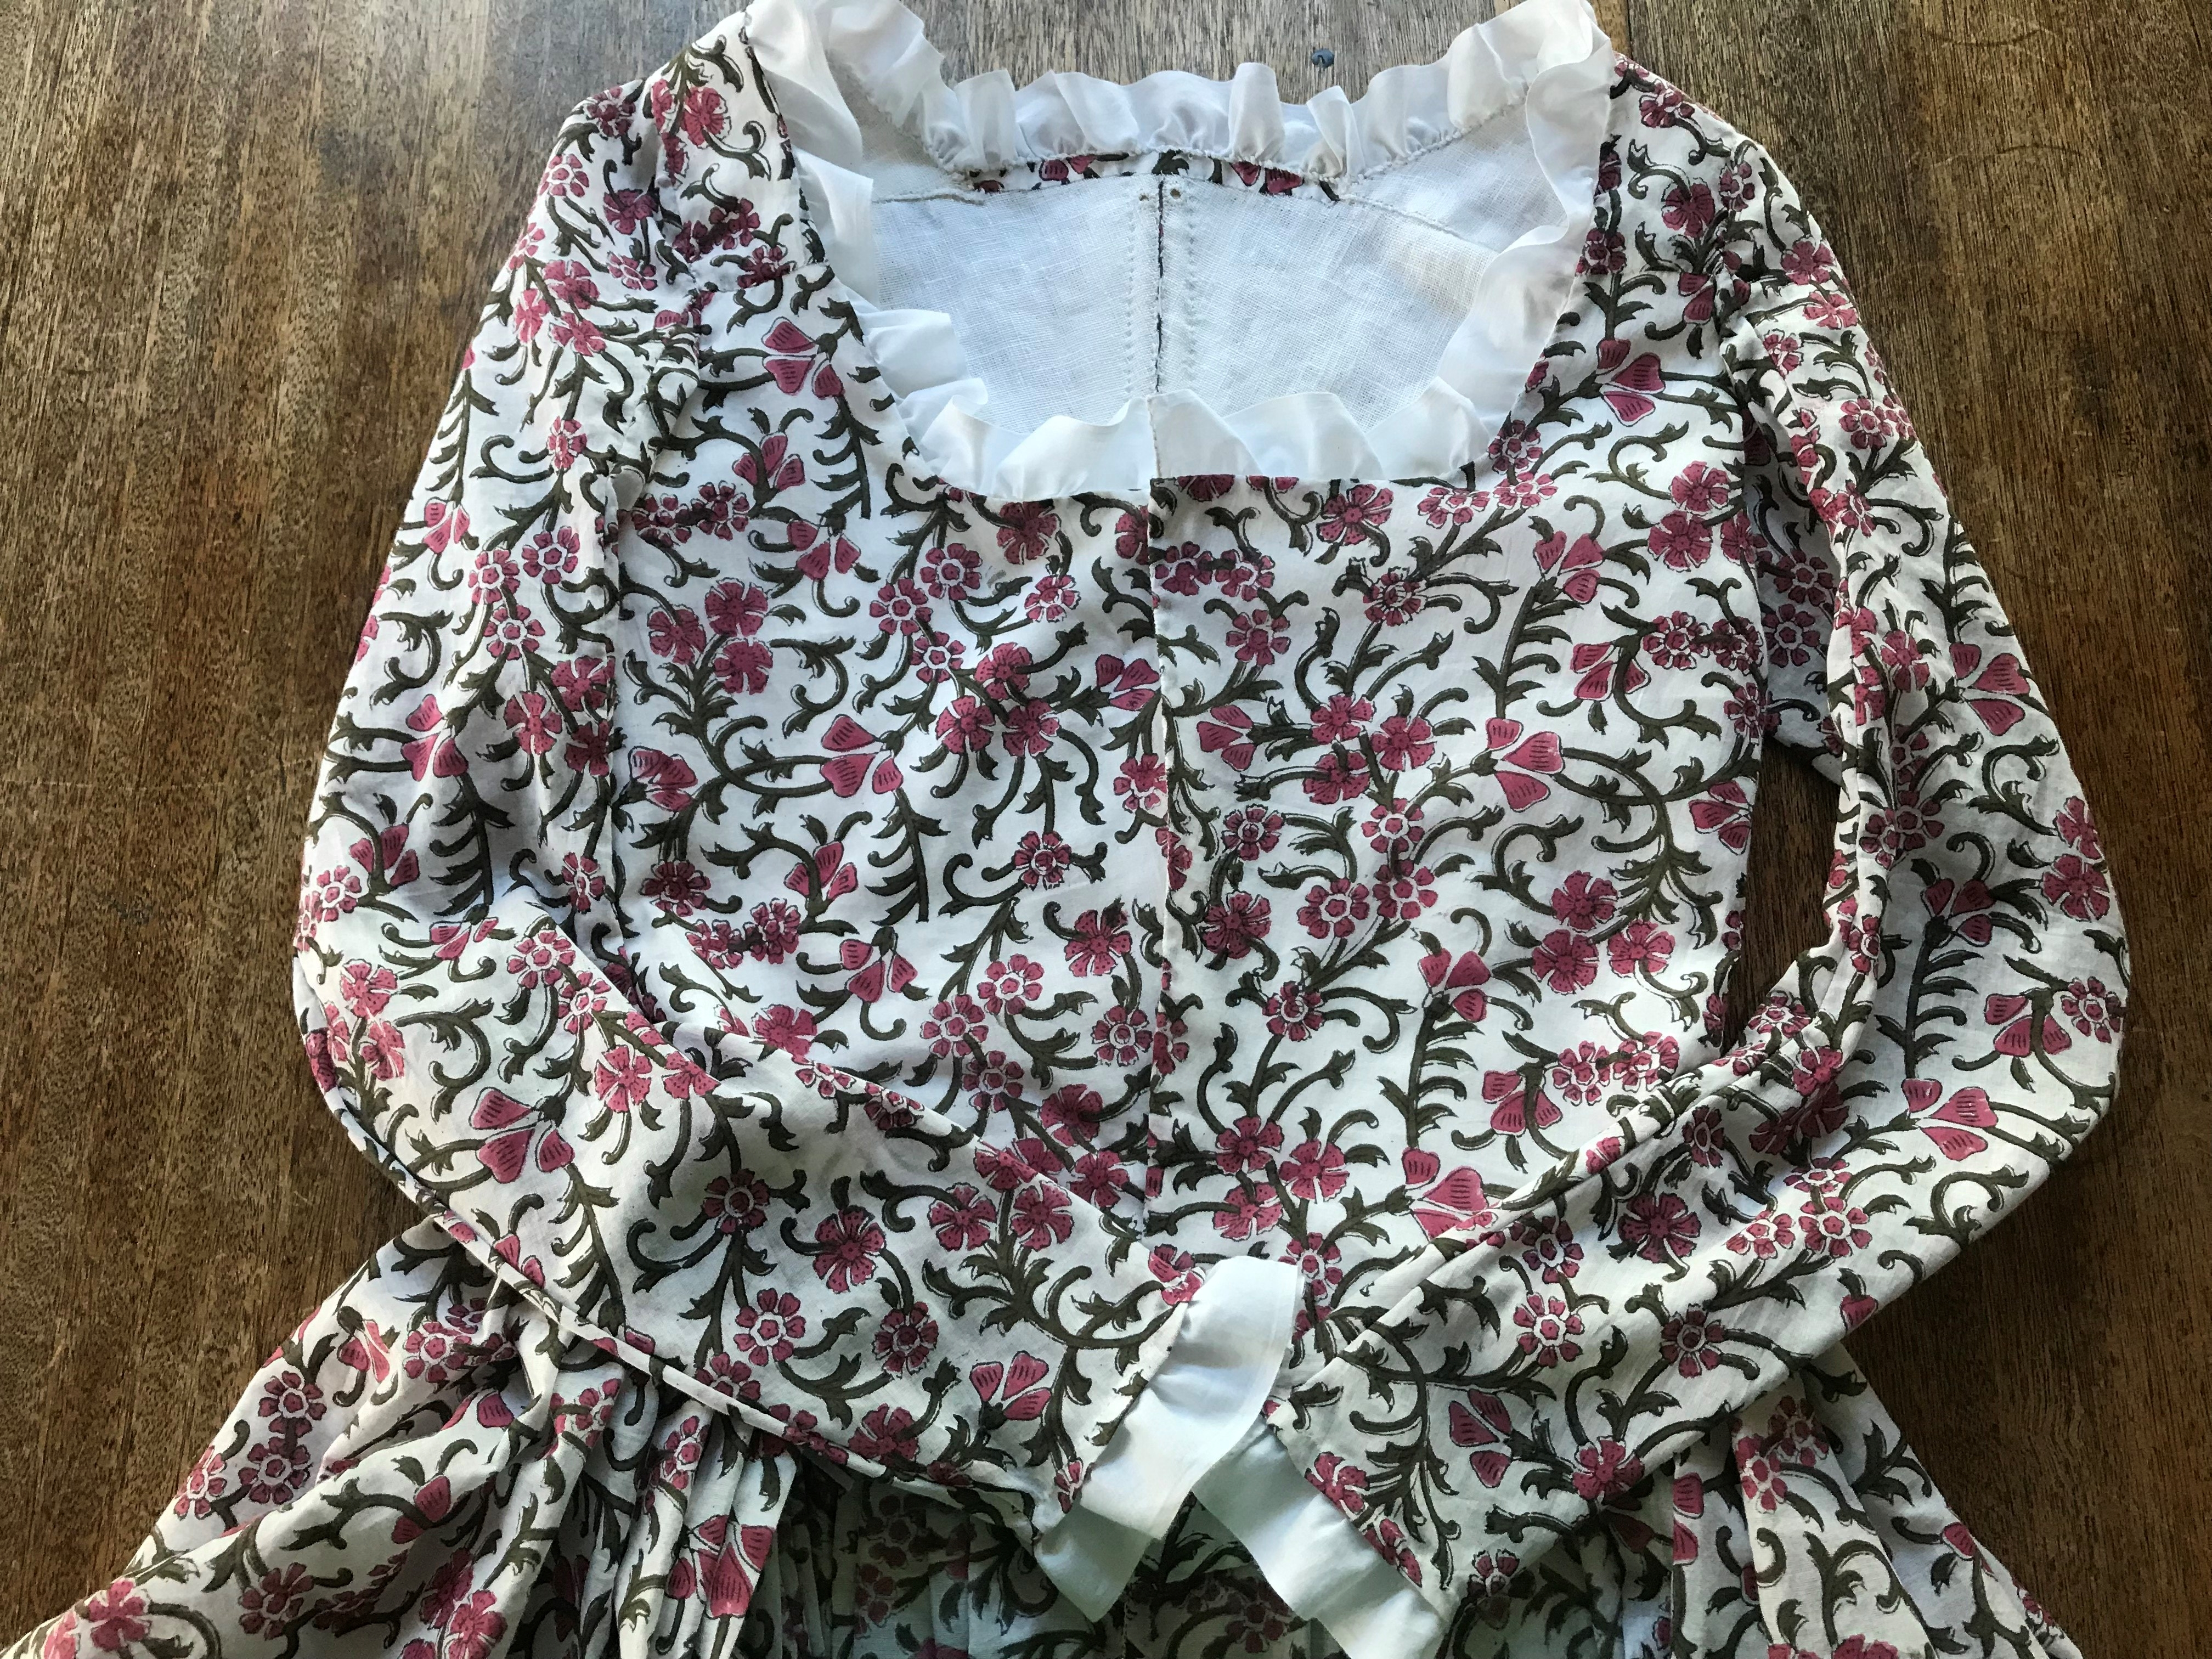 """A Floral 18th Century """"Italian Gown"""" – The Skirts and the Trim"""